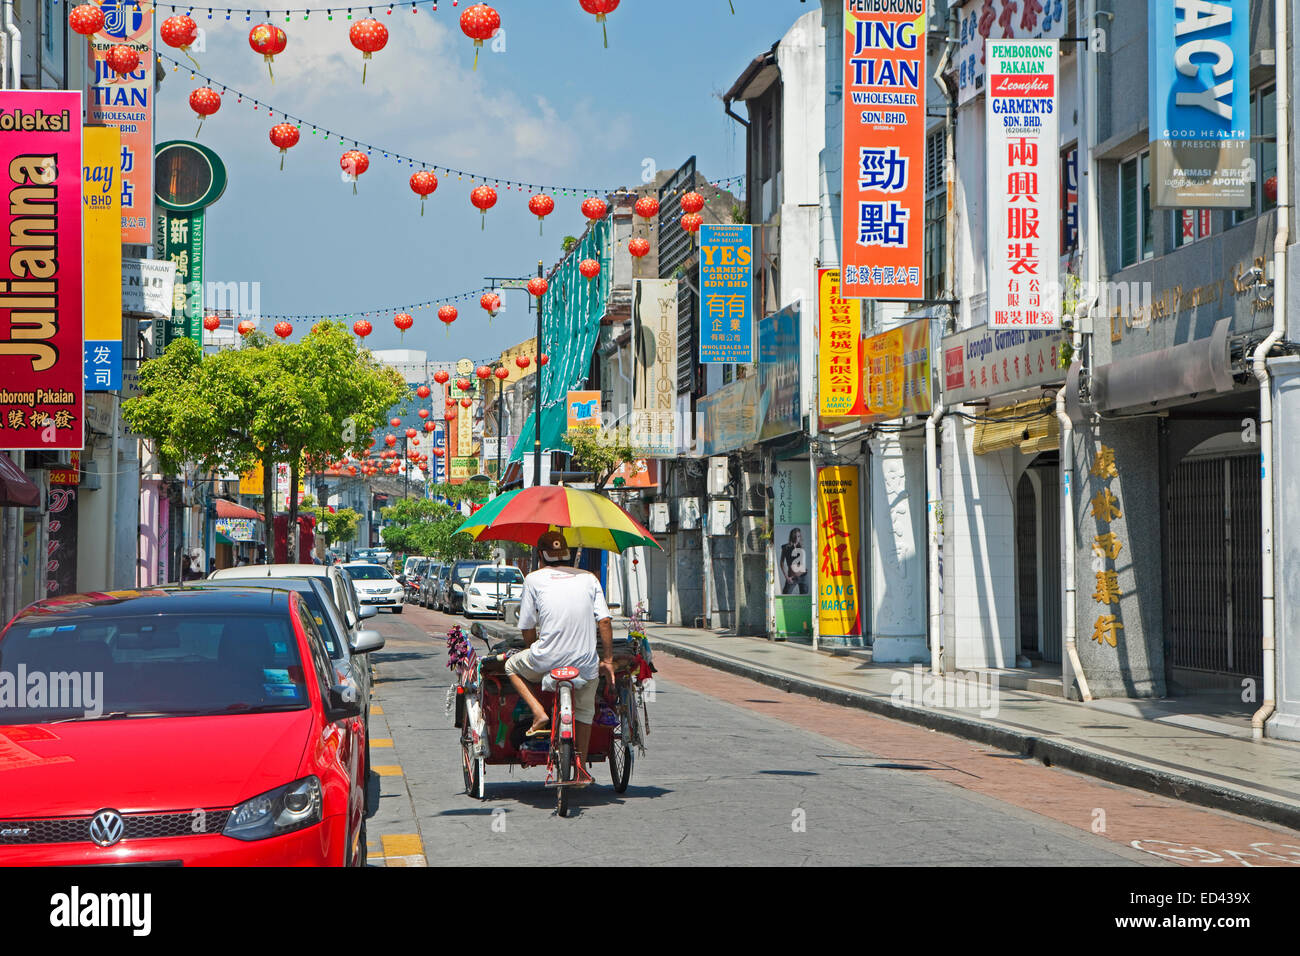 Cycle rickshaw / beca with umbrella riding through shopping street in the city George Town / Georgetown, Penang, - Stock Image